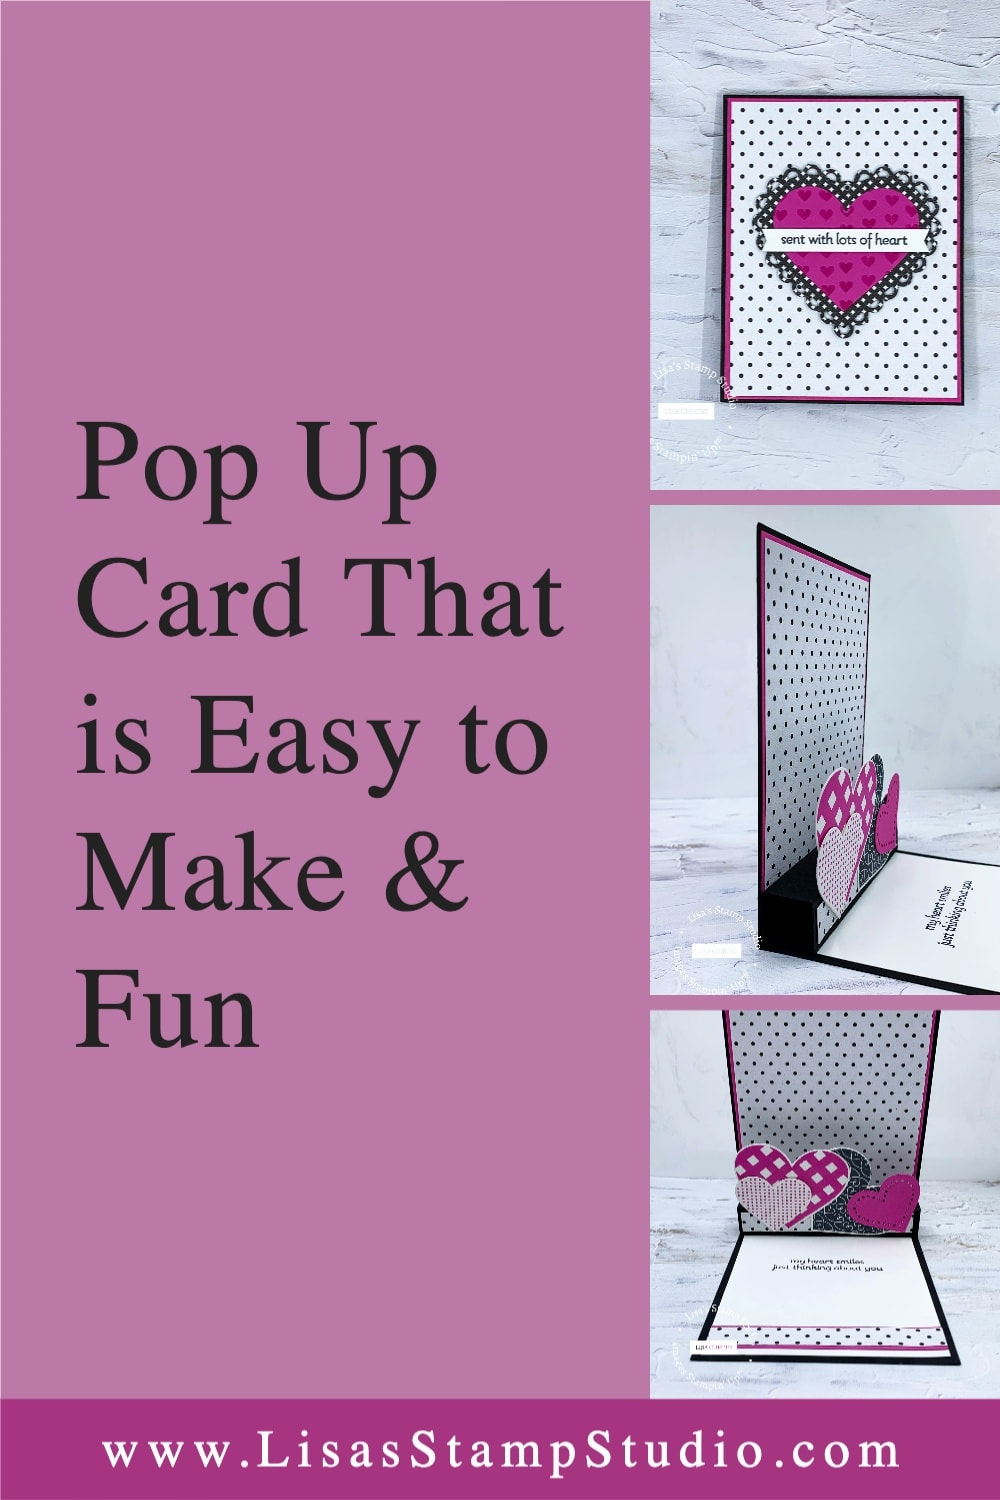 Save this Pop Up Card to your Pinterest board.